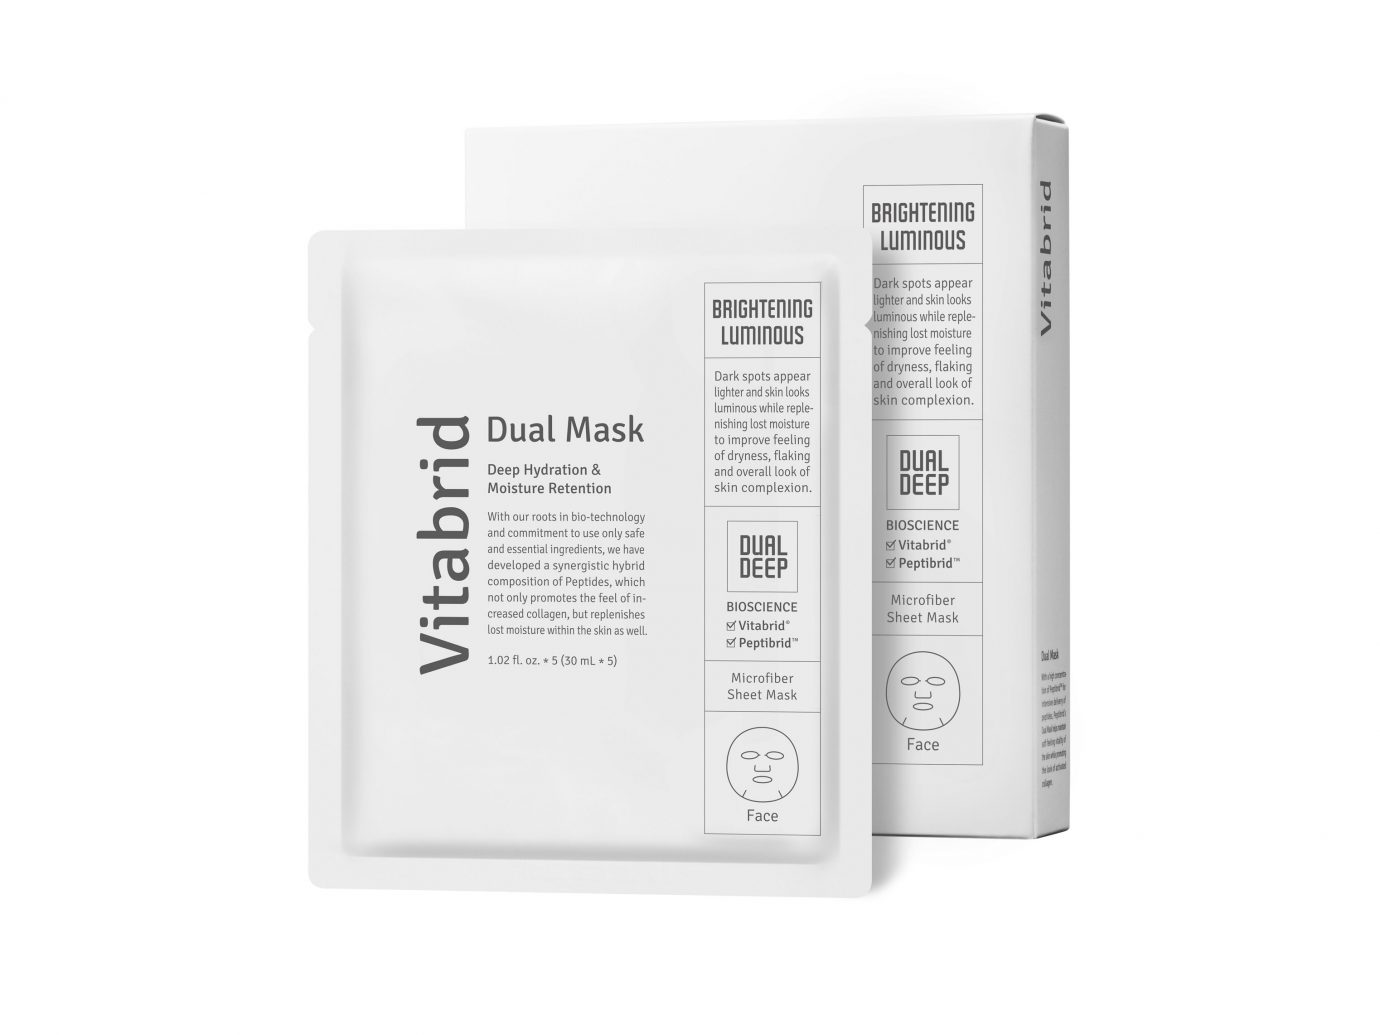 Vitabrid C¹² Dual Mask: Brightening & Luminous